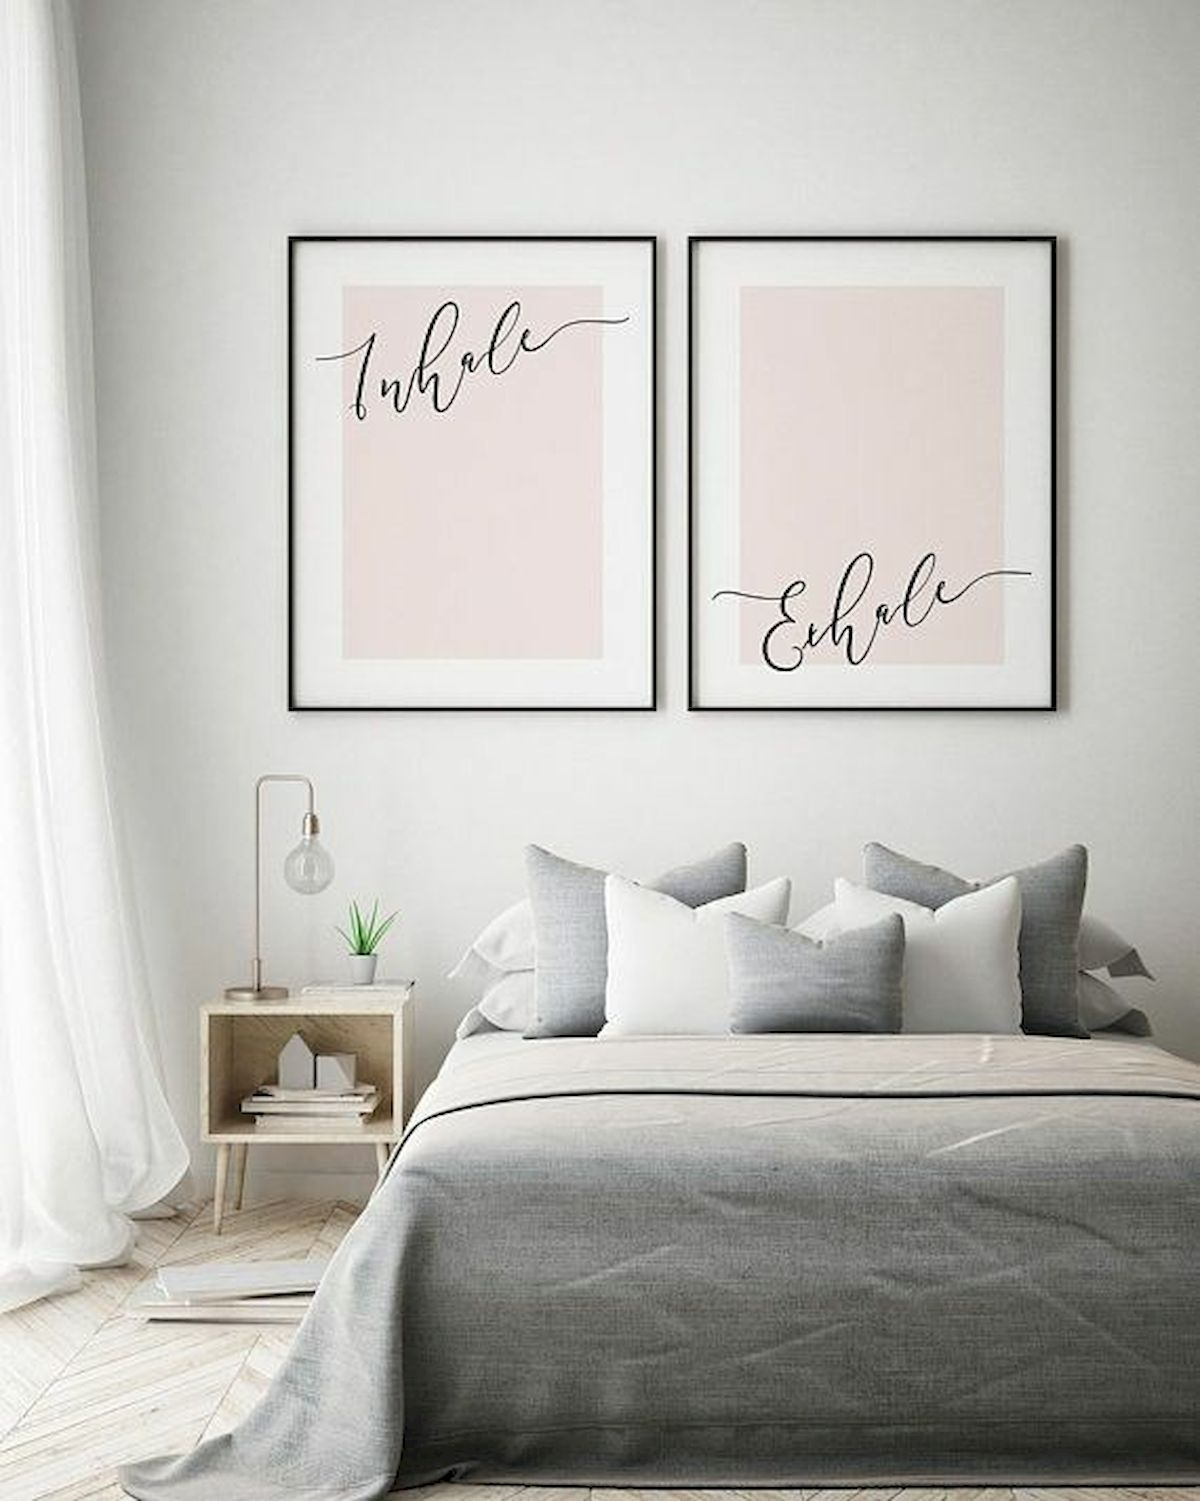 70 Simple Wall Bedroom Decor and Design Ideas (58)